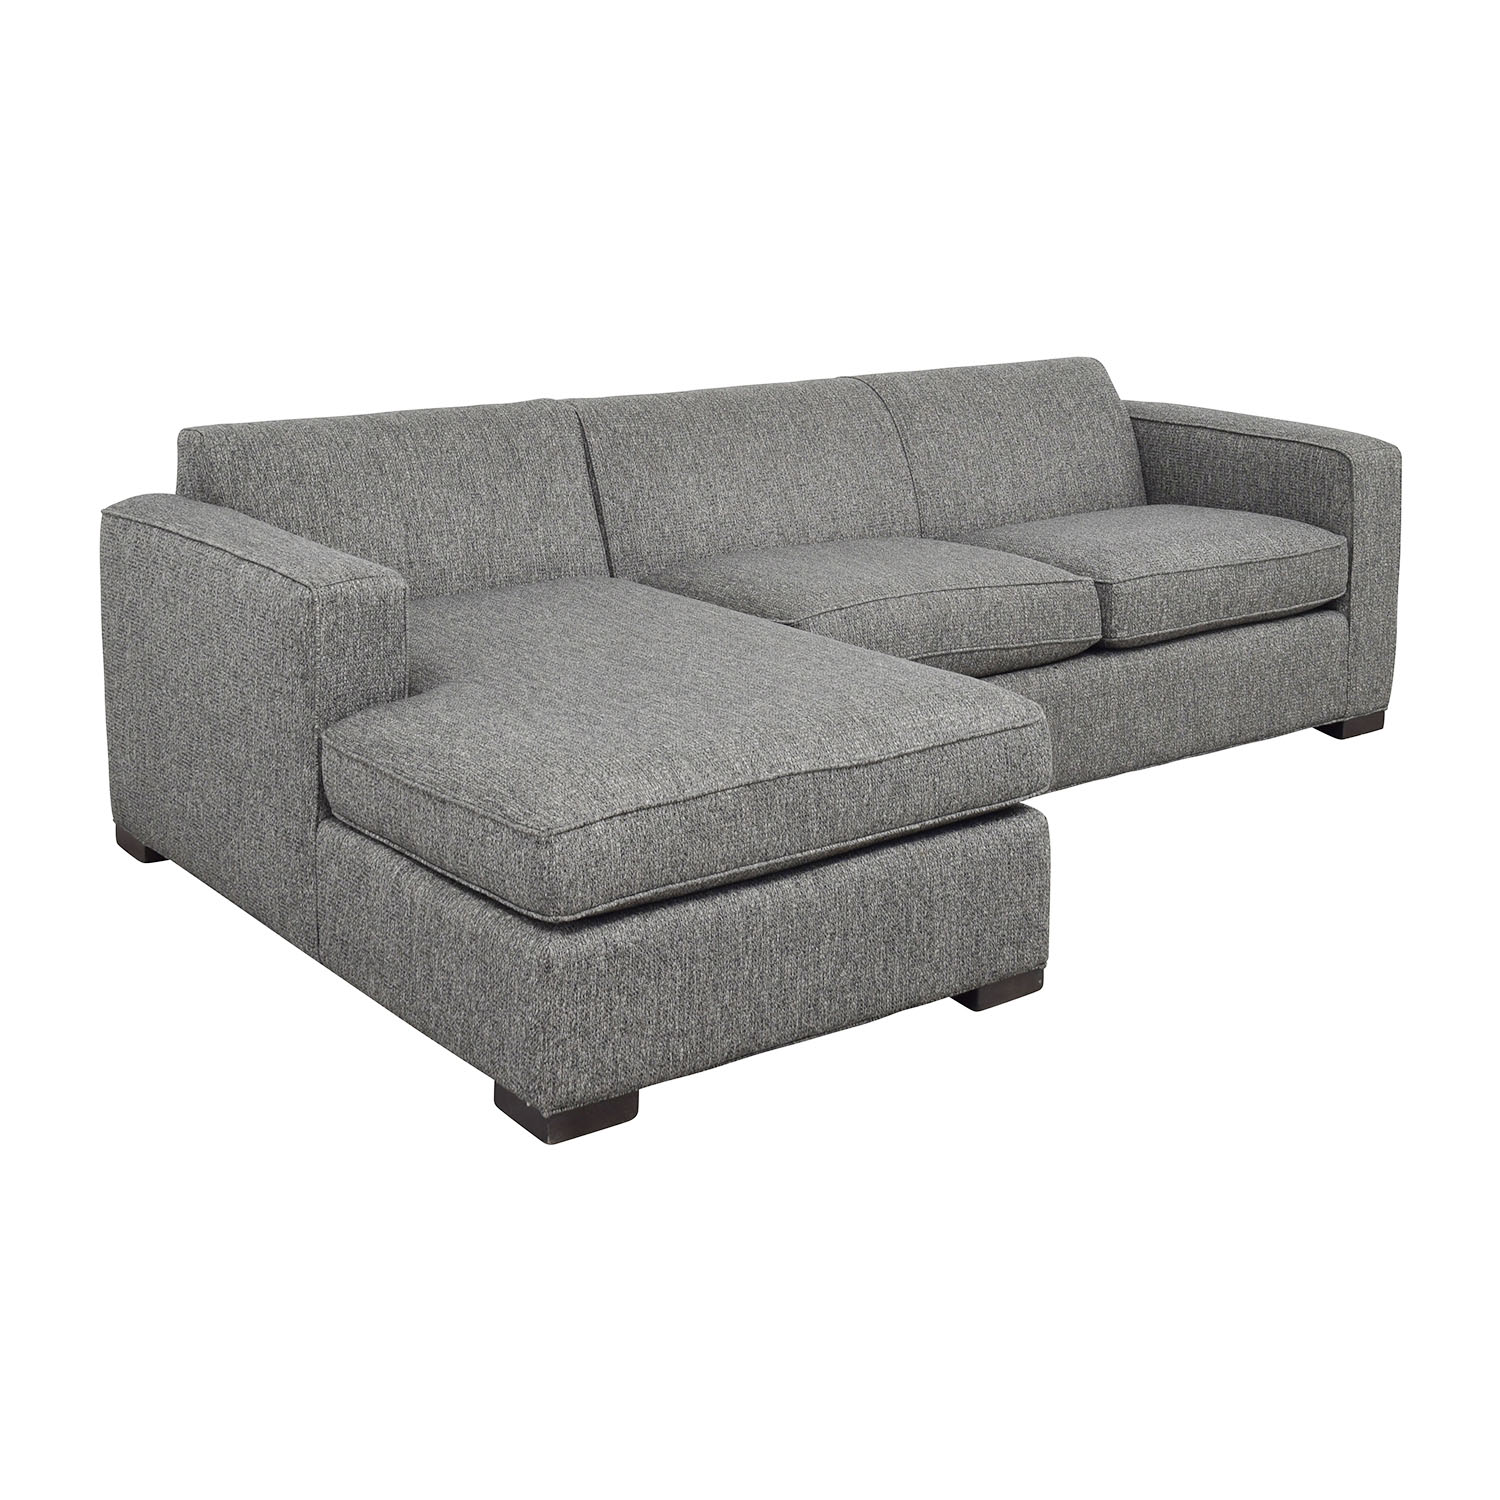 Room & Board Room & Board Easton Sectional In